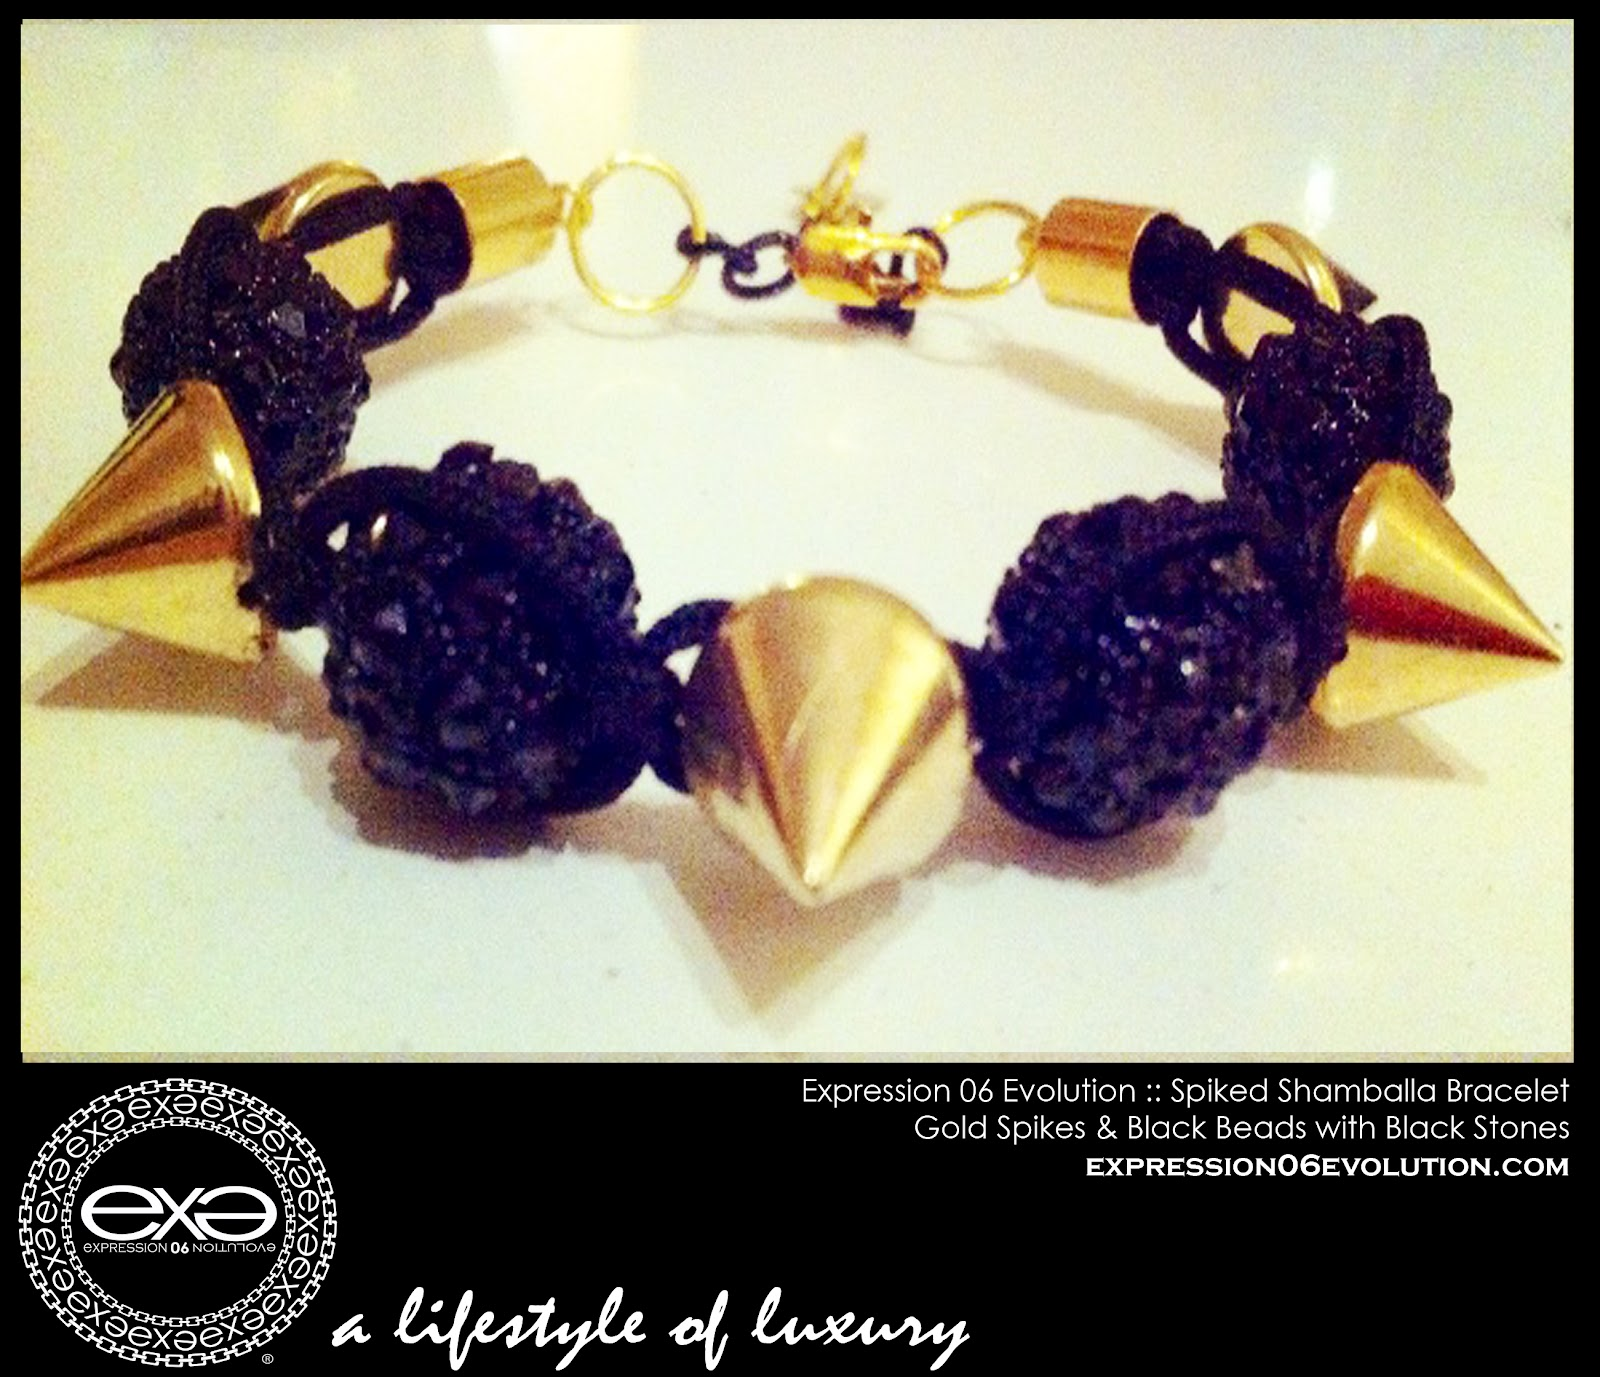 http://2.bp.blogspot.com/-pgPv9O-3SNM/UCY3r6YG-AI/AAAAAAAAB2c/NMwiOe7wR8w/s1600/EXPRESSION+06+EVOLUTION+-+SPIKED+SHAMBALLA+BRACLET+-+GOLD+SPIKES+WITH+BLACK+STONES+-+EXPRESSIVE+CLOTHING+LLC+-+DUSHON+EX+DANIELS+-+ALEXIS+BELSKI+.jpg